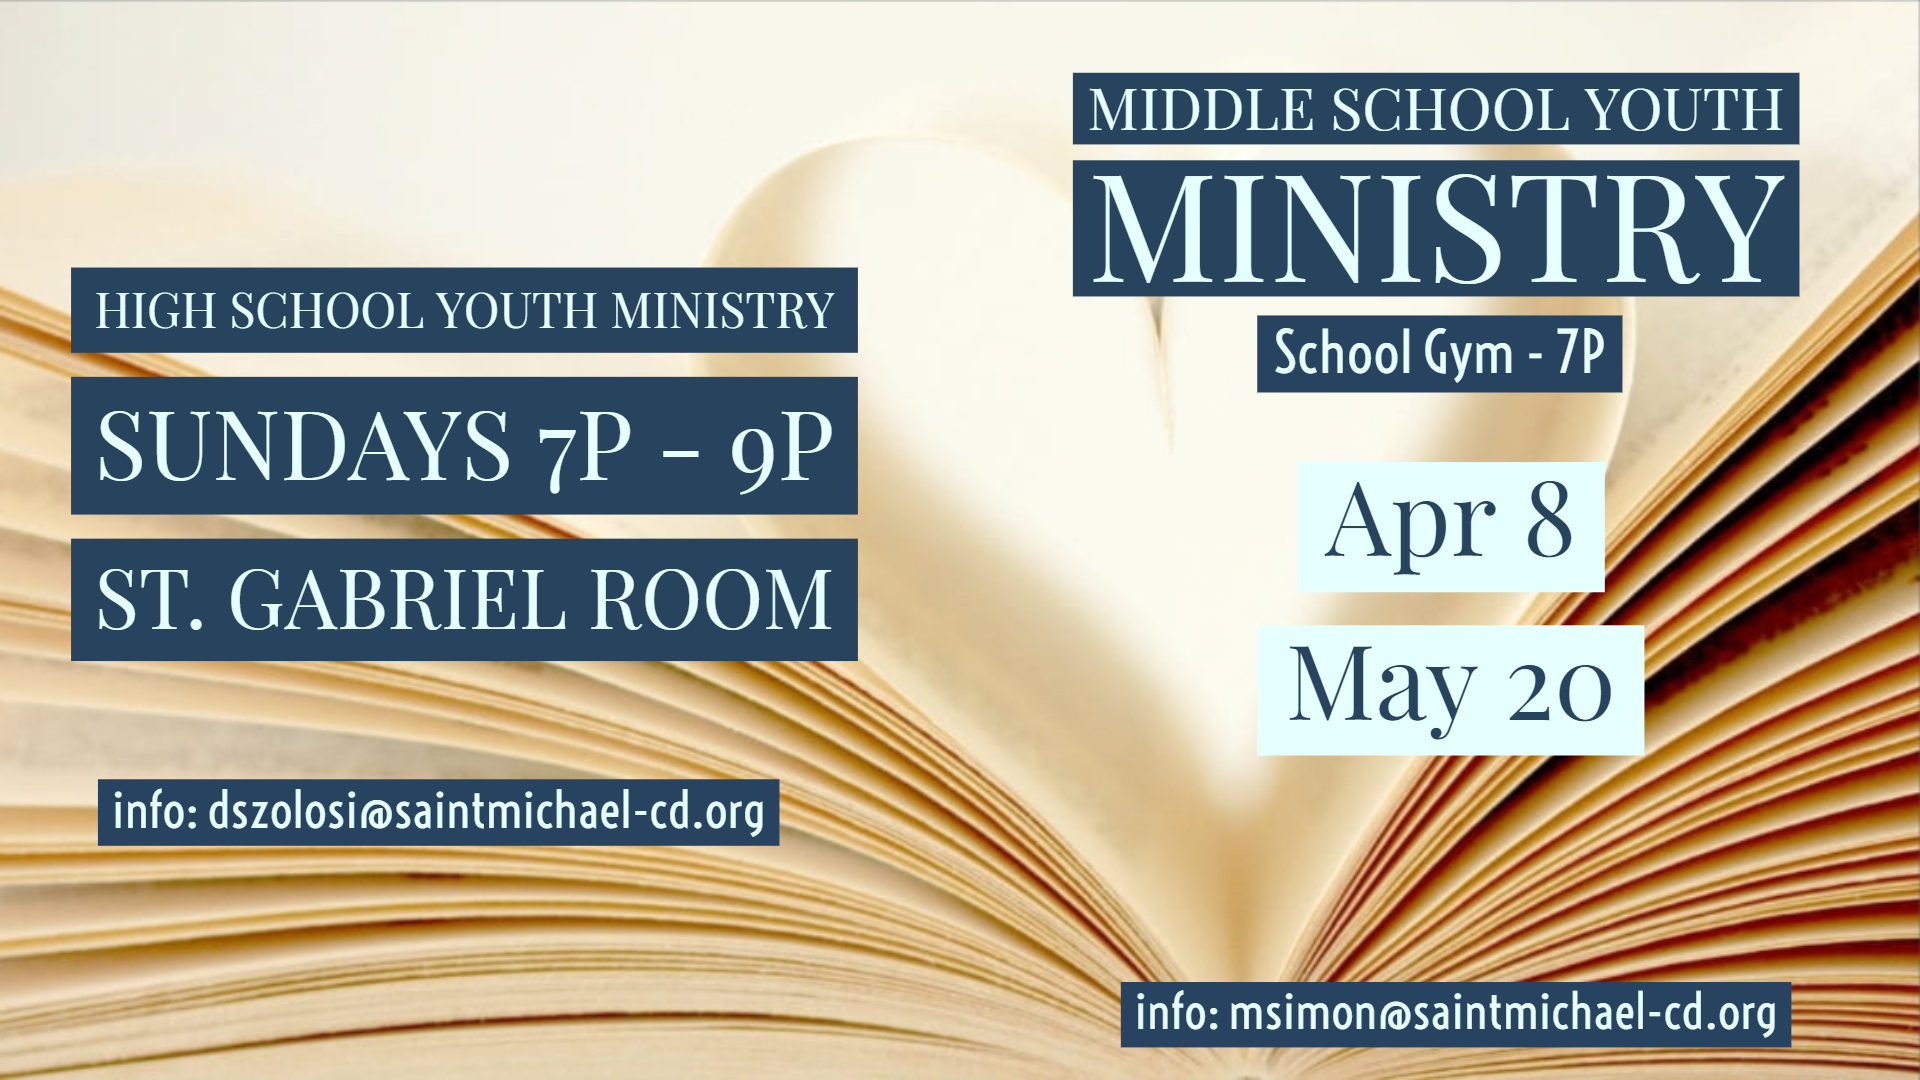 high school and middle school youth ministries times and dates